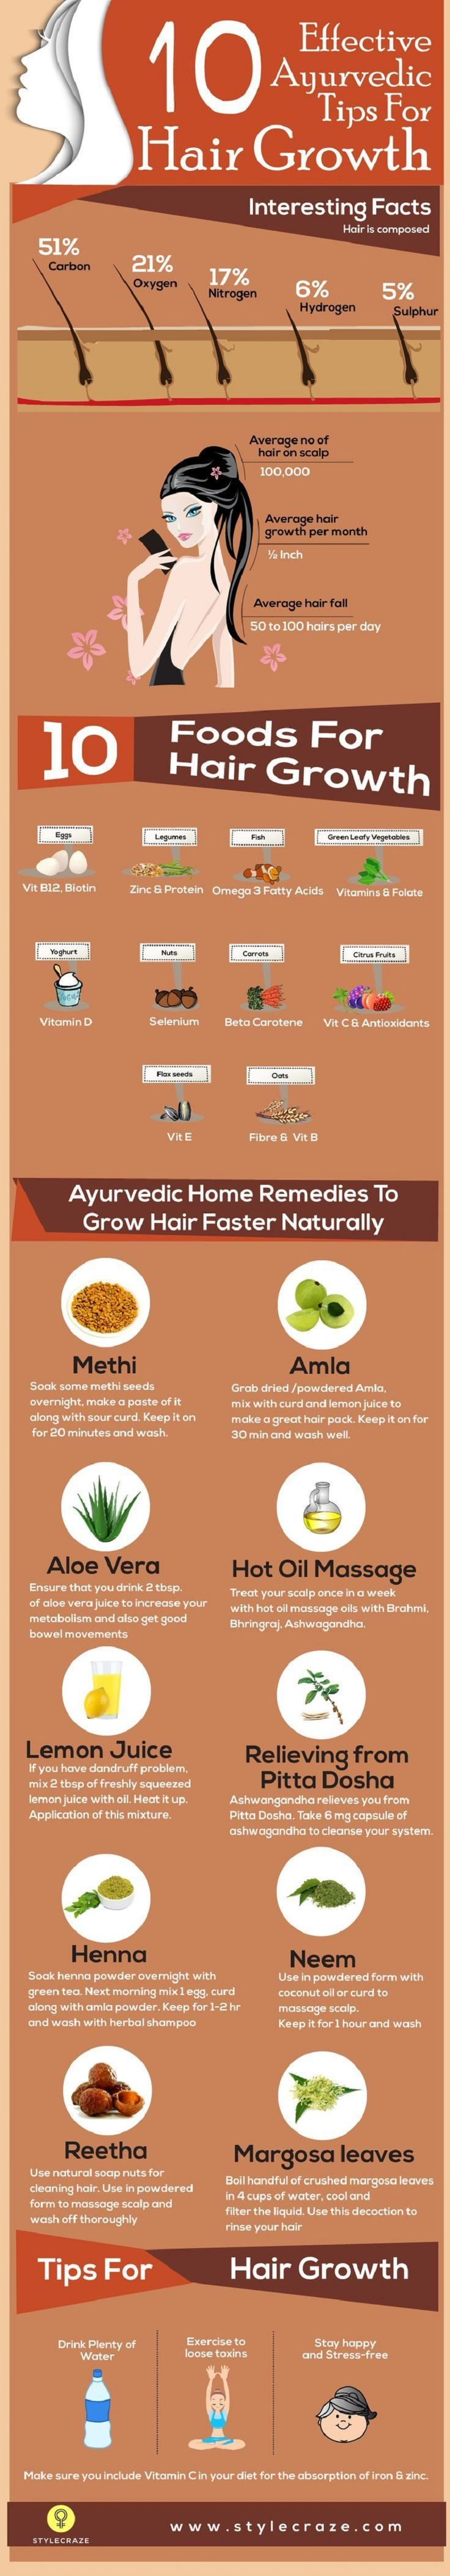 10 Effective Ayurvedic Tips For Hair Growth - 10 Leading Tips and DIYs to Grow Your Hair Faster